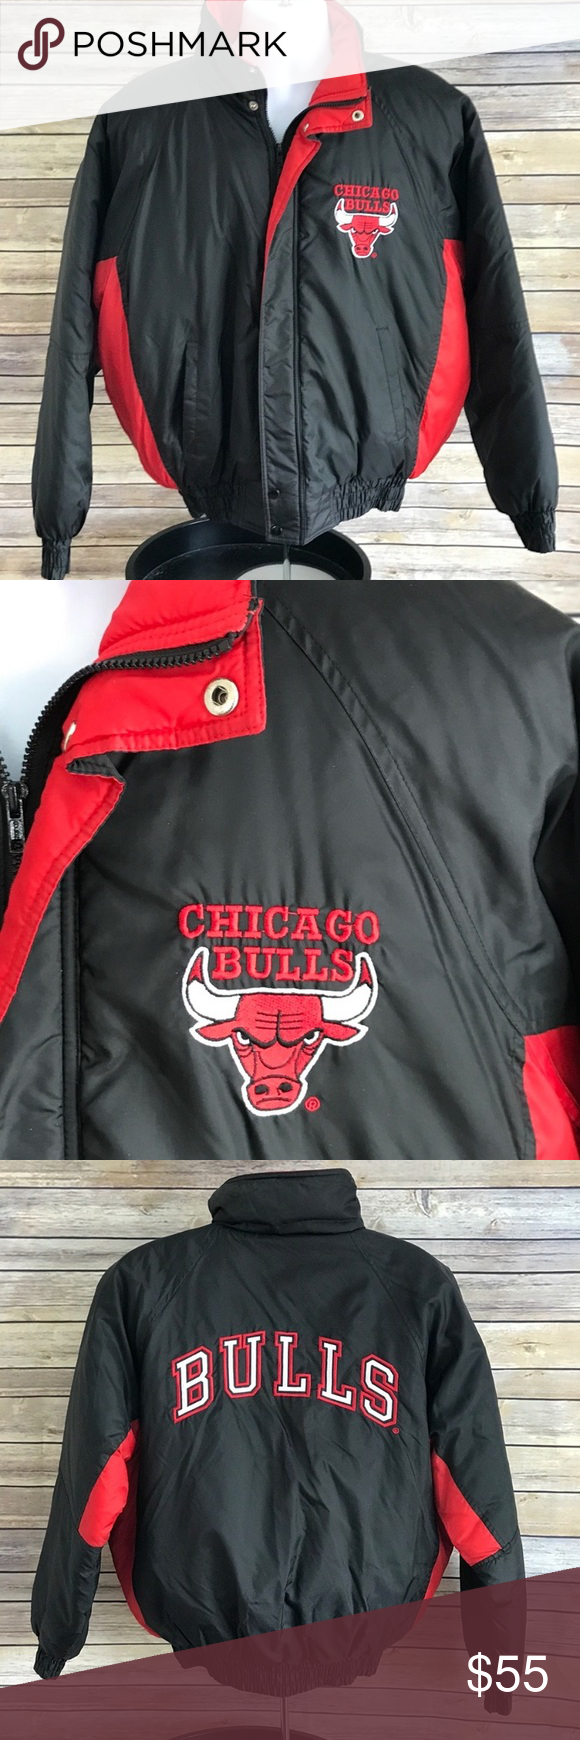 Vintage Chicago Bulls Puffer Coat Nba Competitor Puffer Coat Jackets Clothes Design